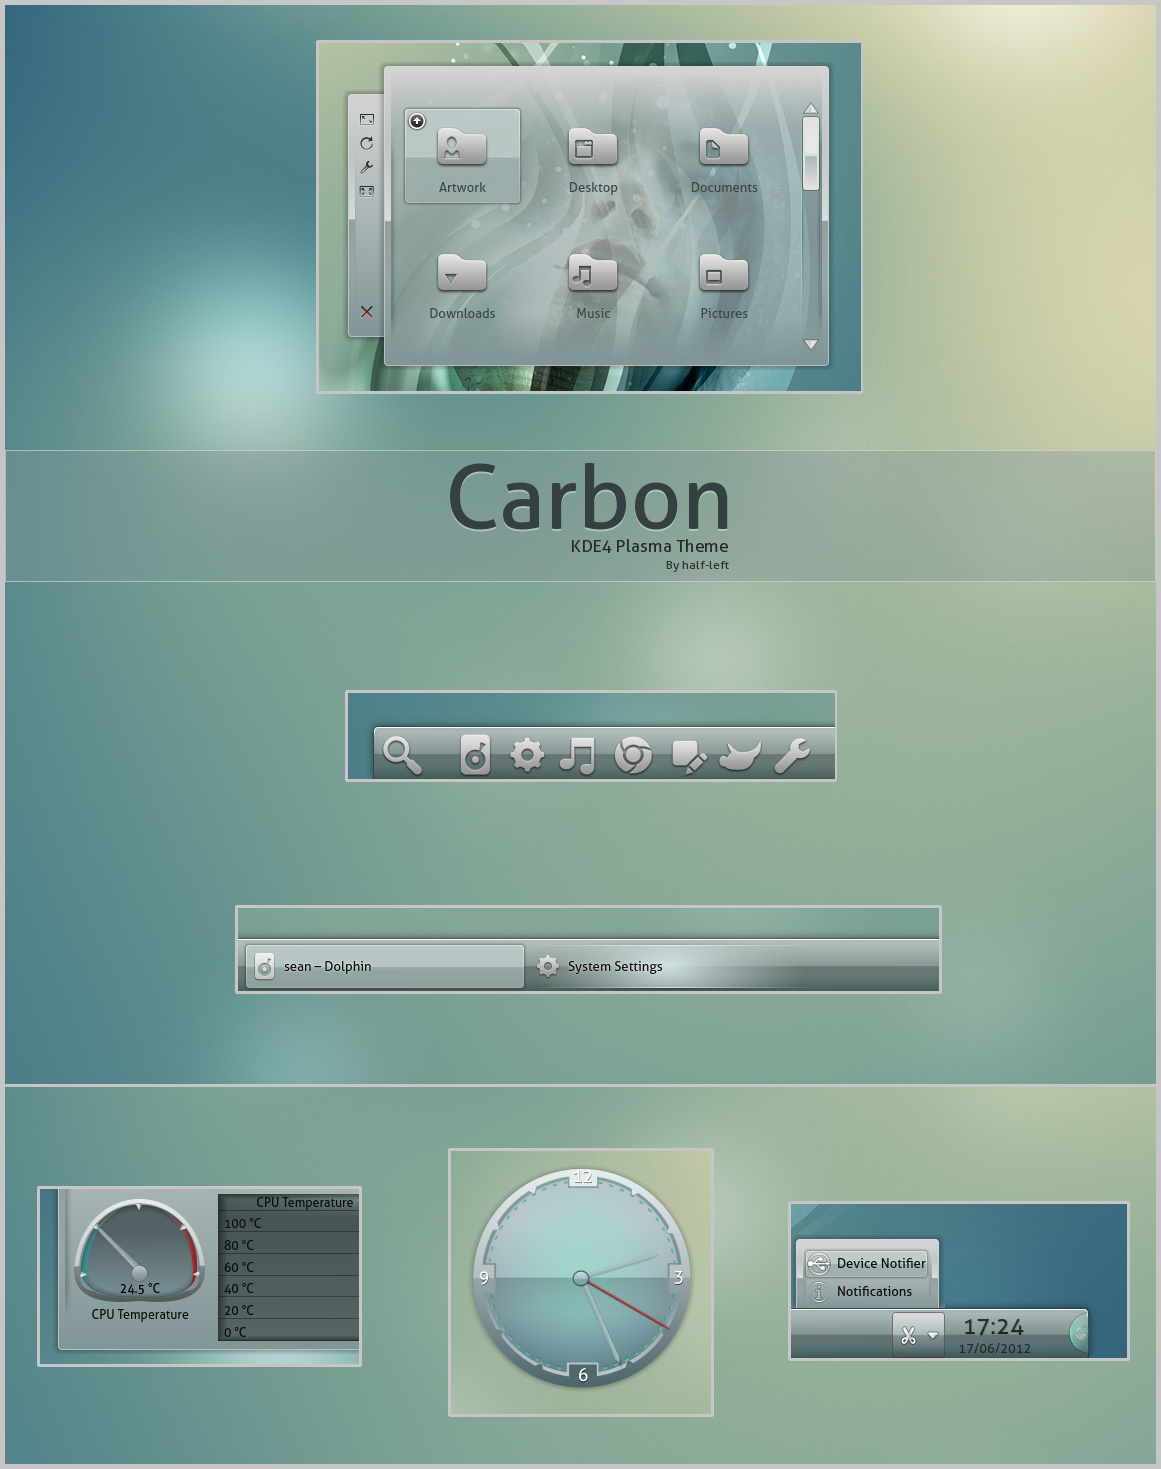 KDE4 - Carbon by half-left